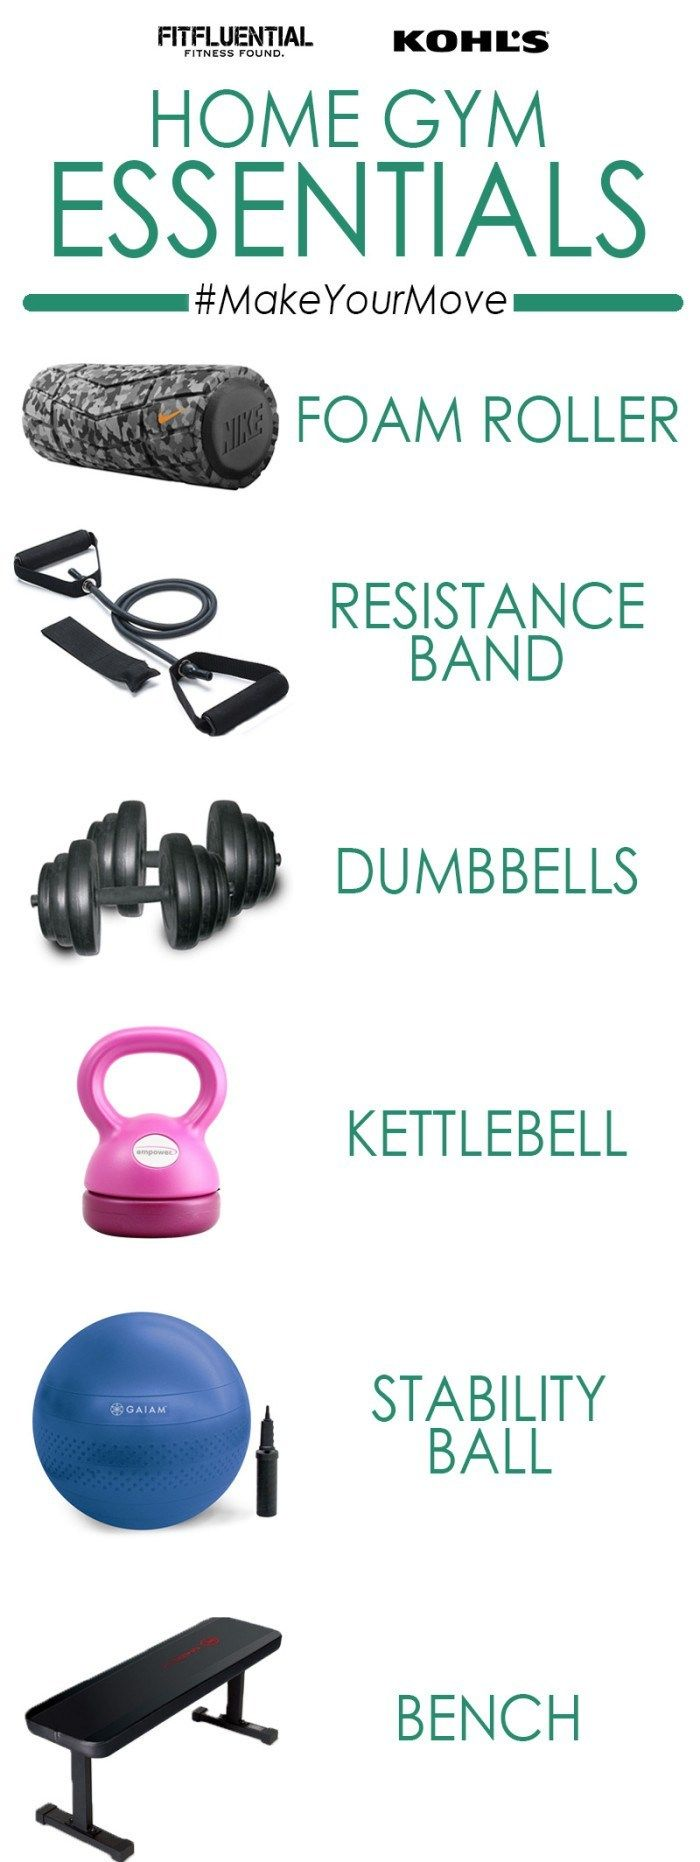 #MakeYourMove with home workout essentials sponsored by Kohls